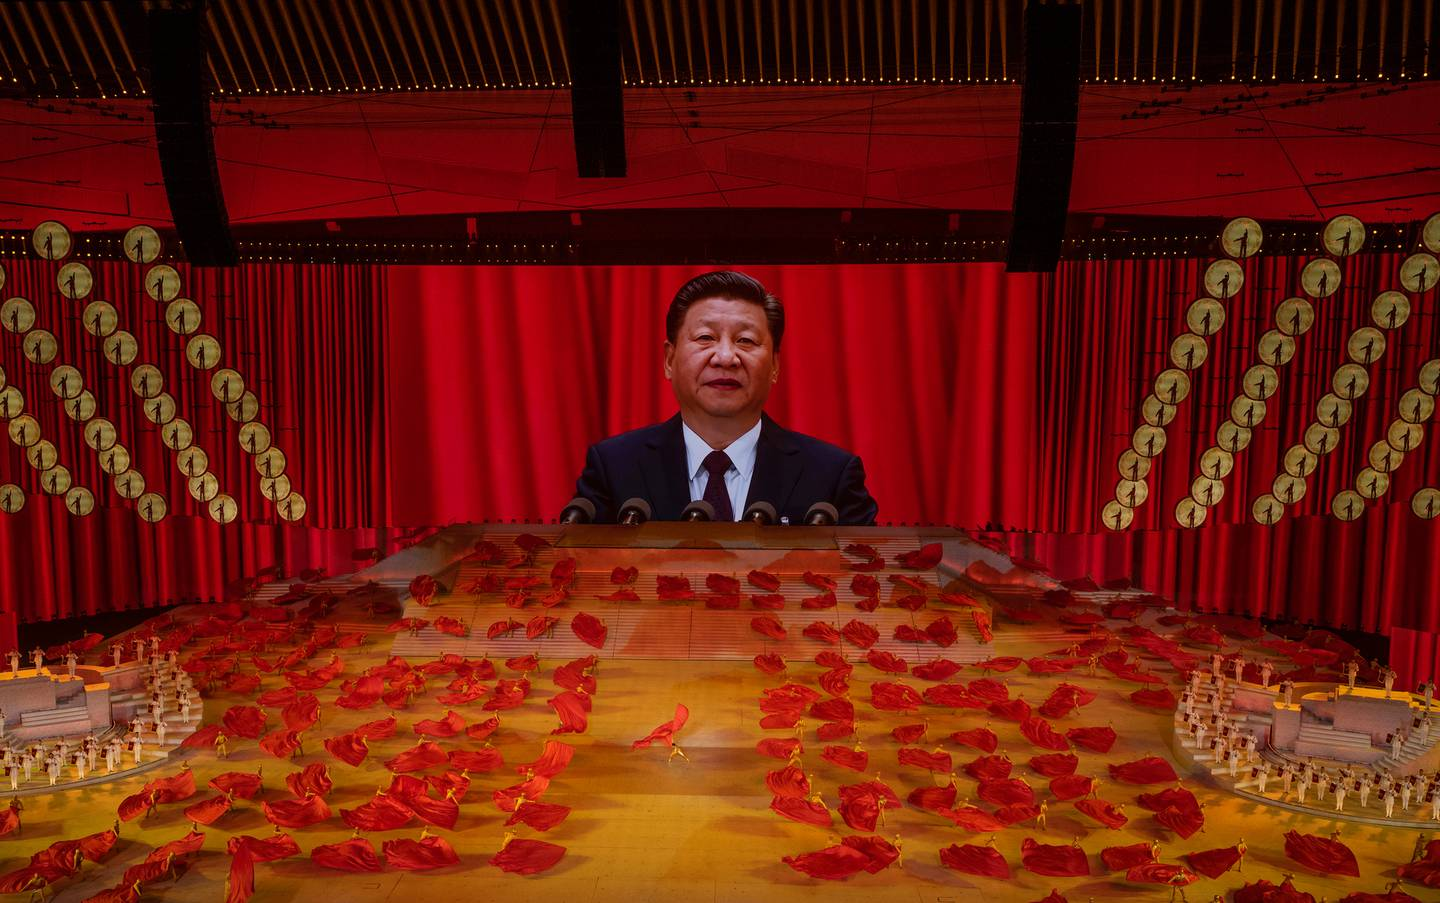 Chinese President and Chairman of the Communist Party Xi Jinping appears on a large screen as performers dance during a mass gala marking the 100th anniversary of the Communist Party. Photo / Getty Images